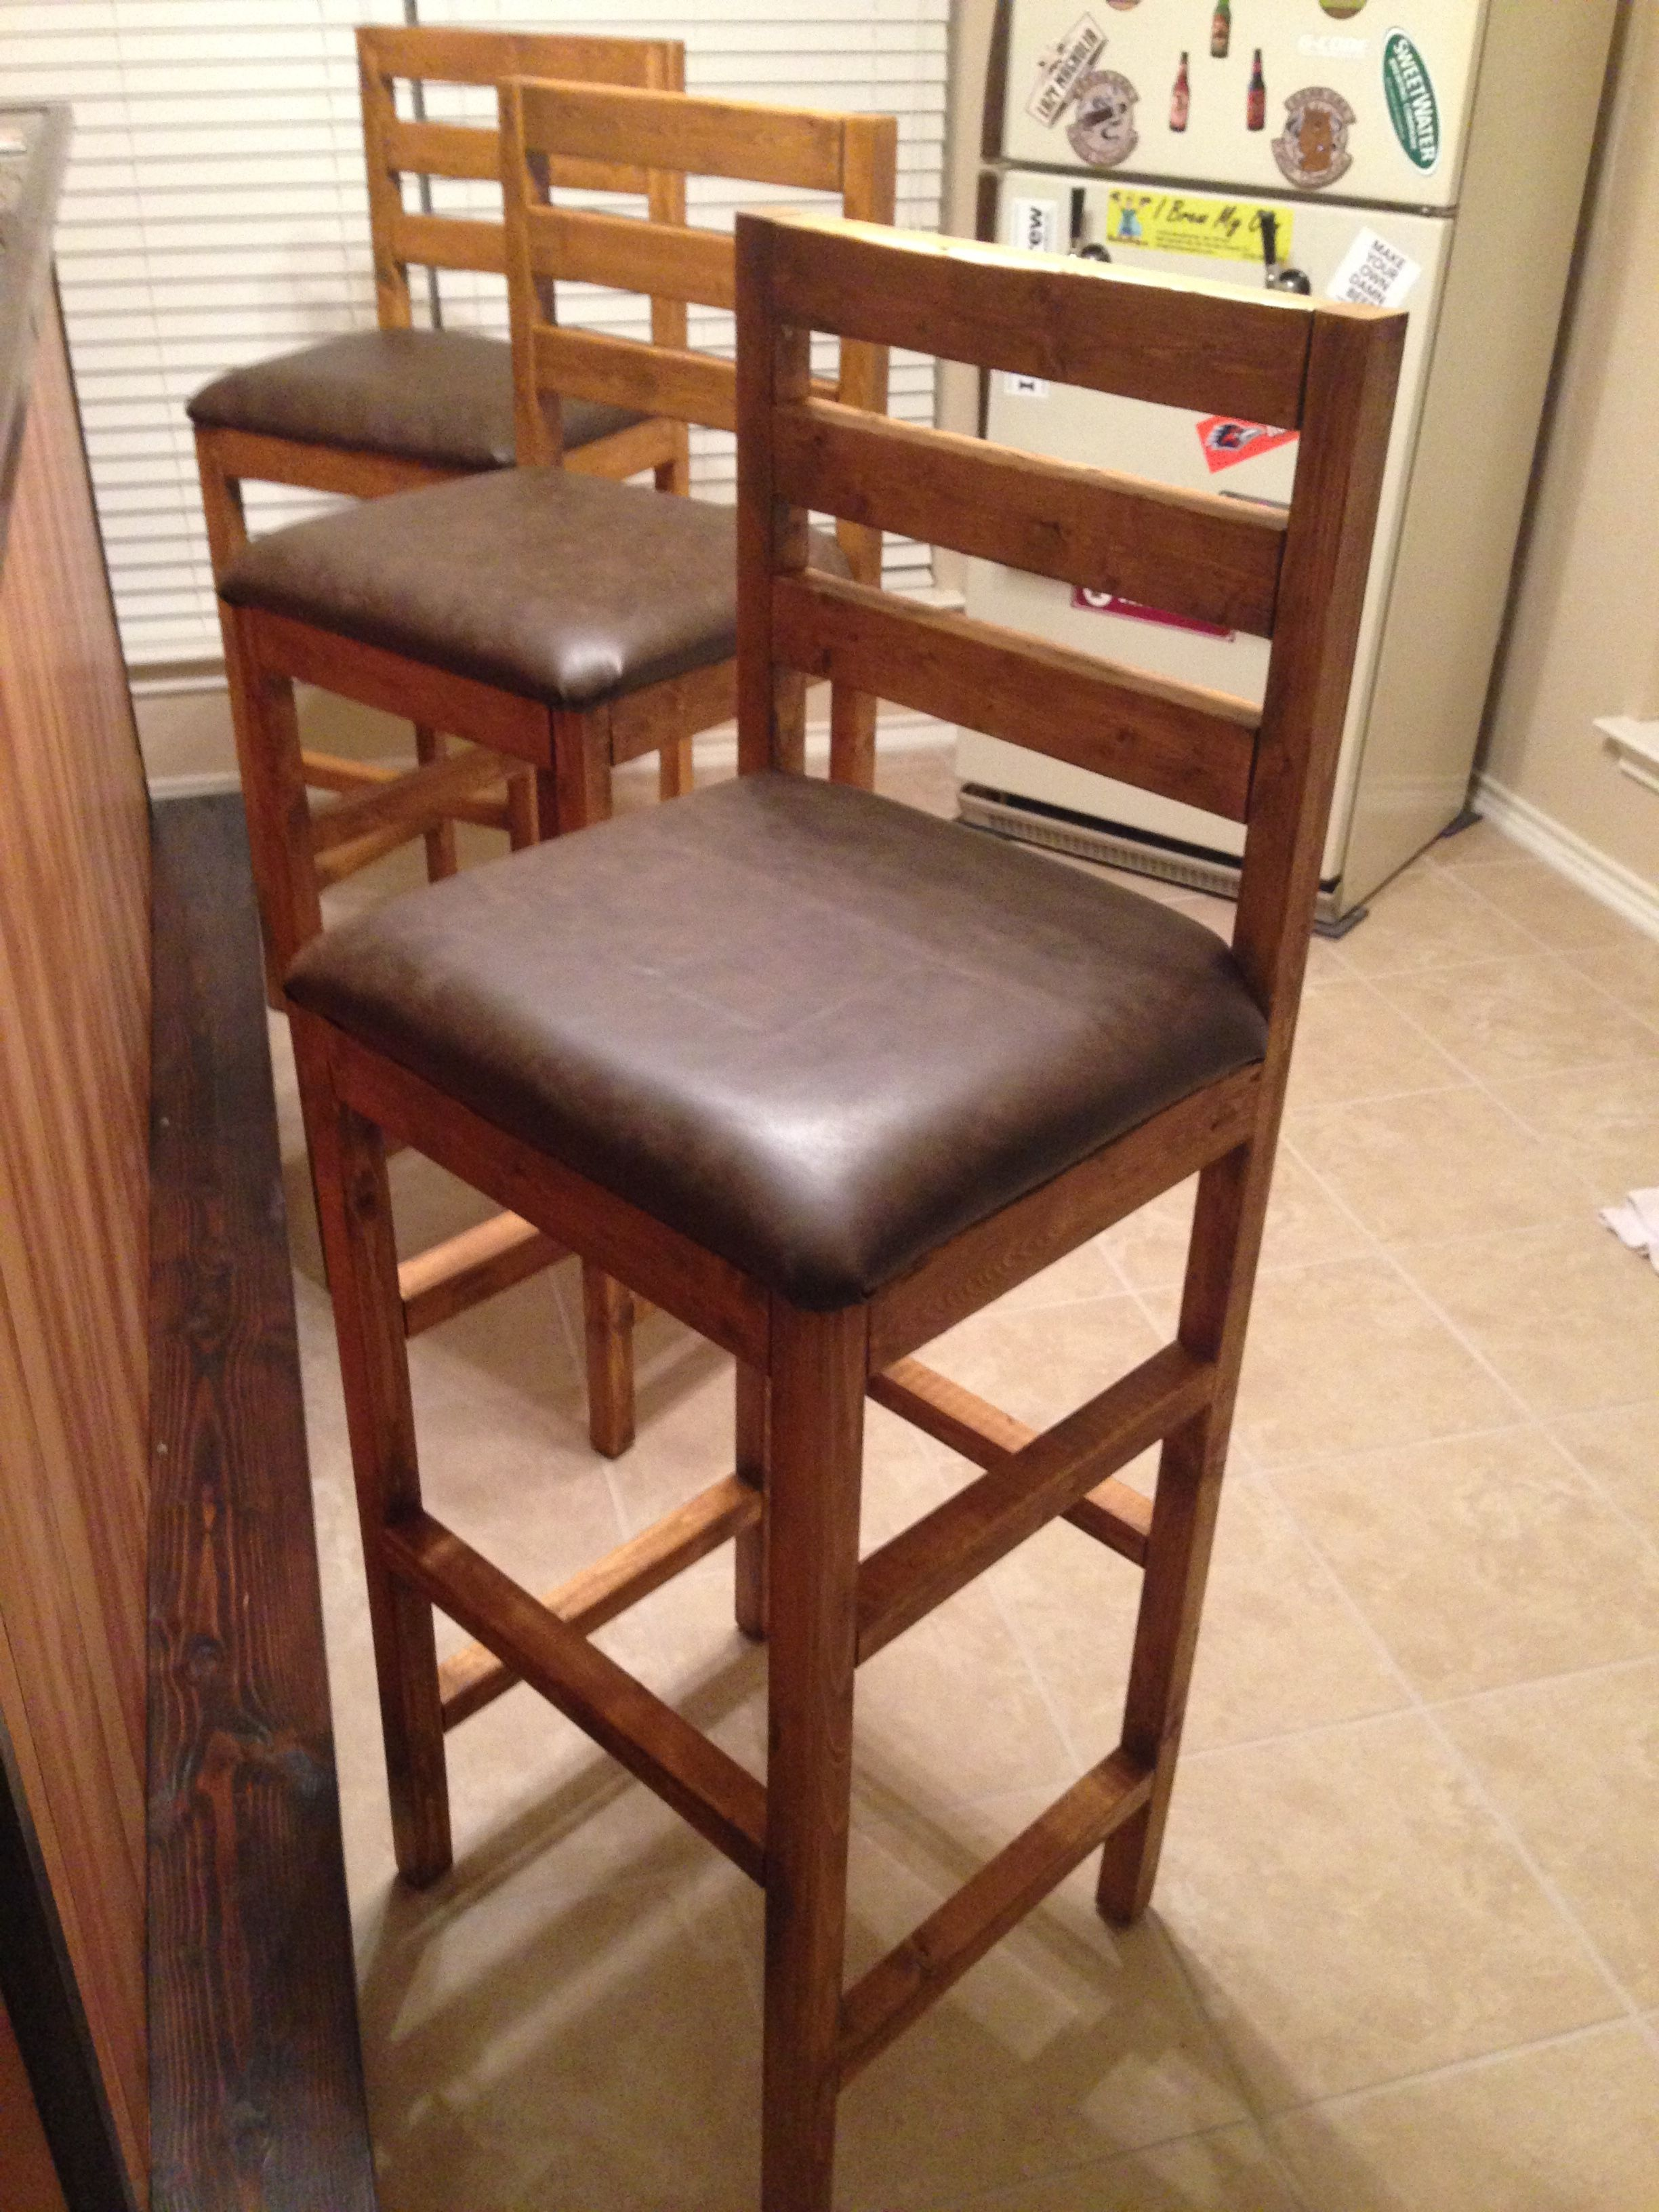 Extra Tall Bar Stool Diy Home Bar Diy Bar Stools Extra Tall